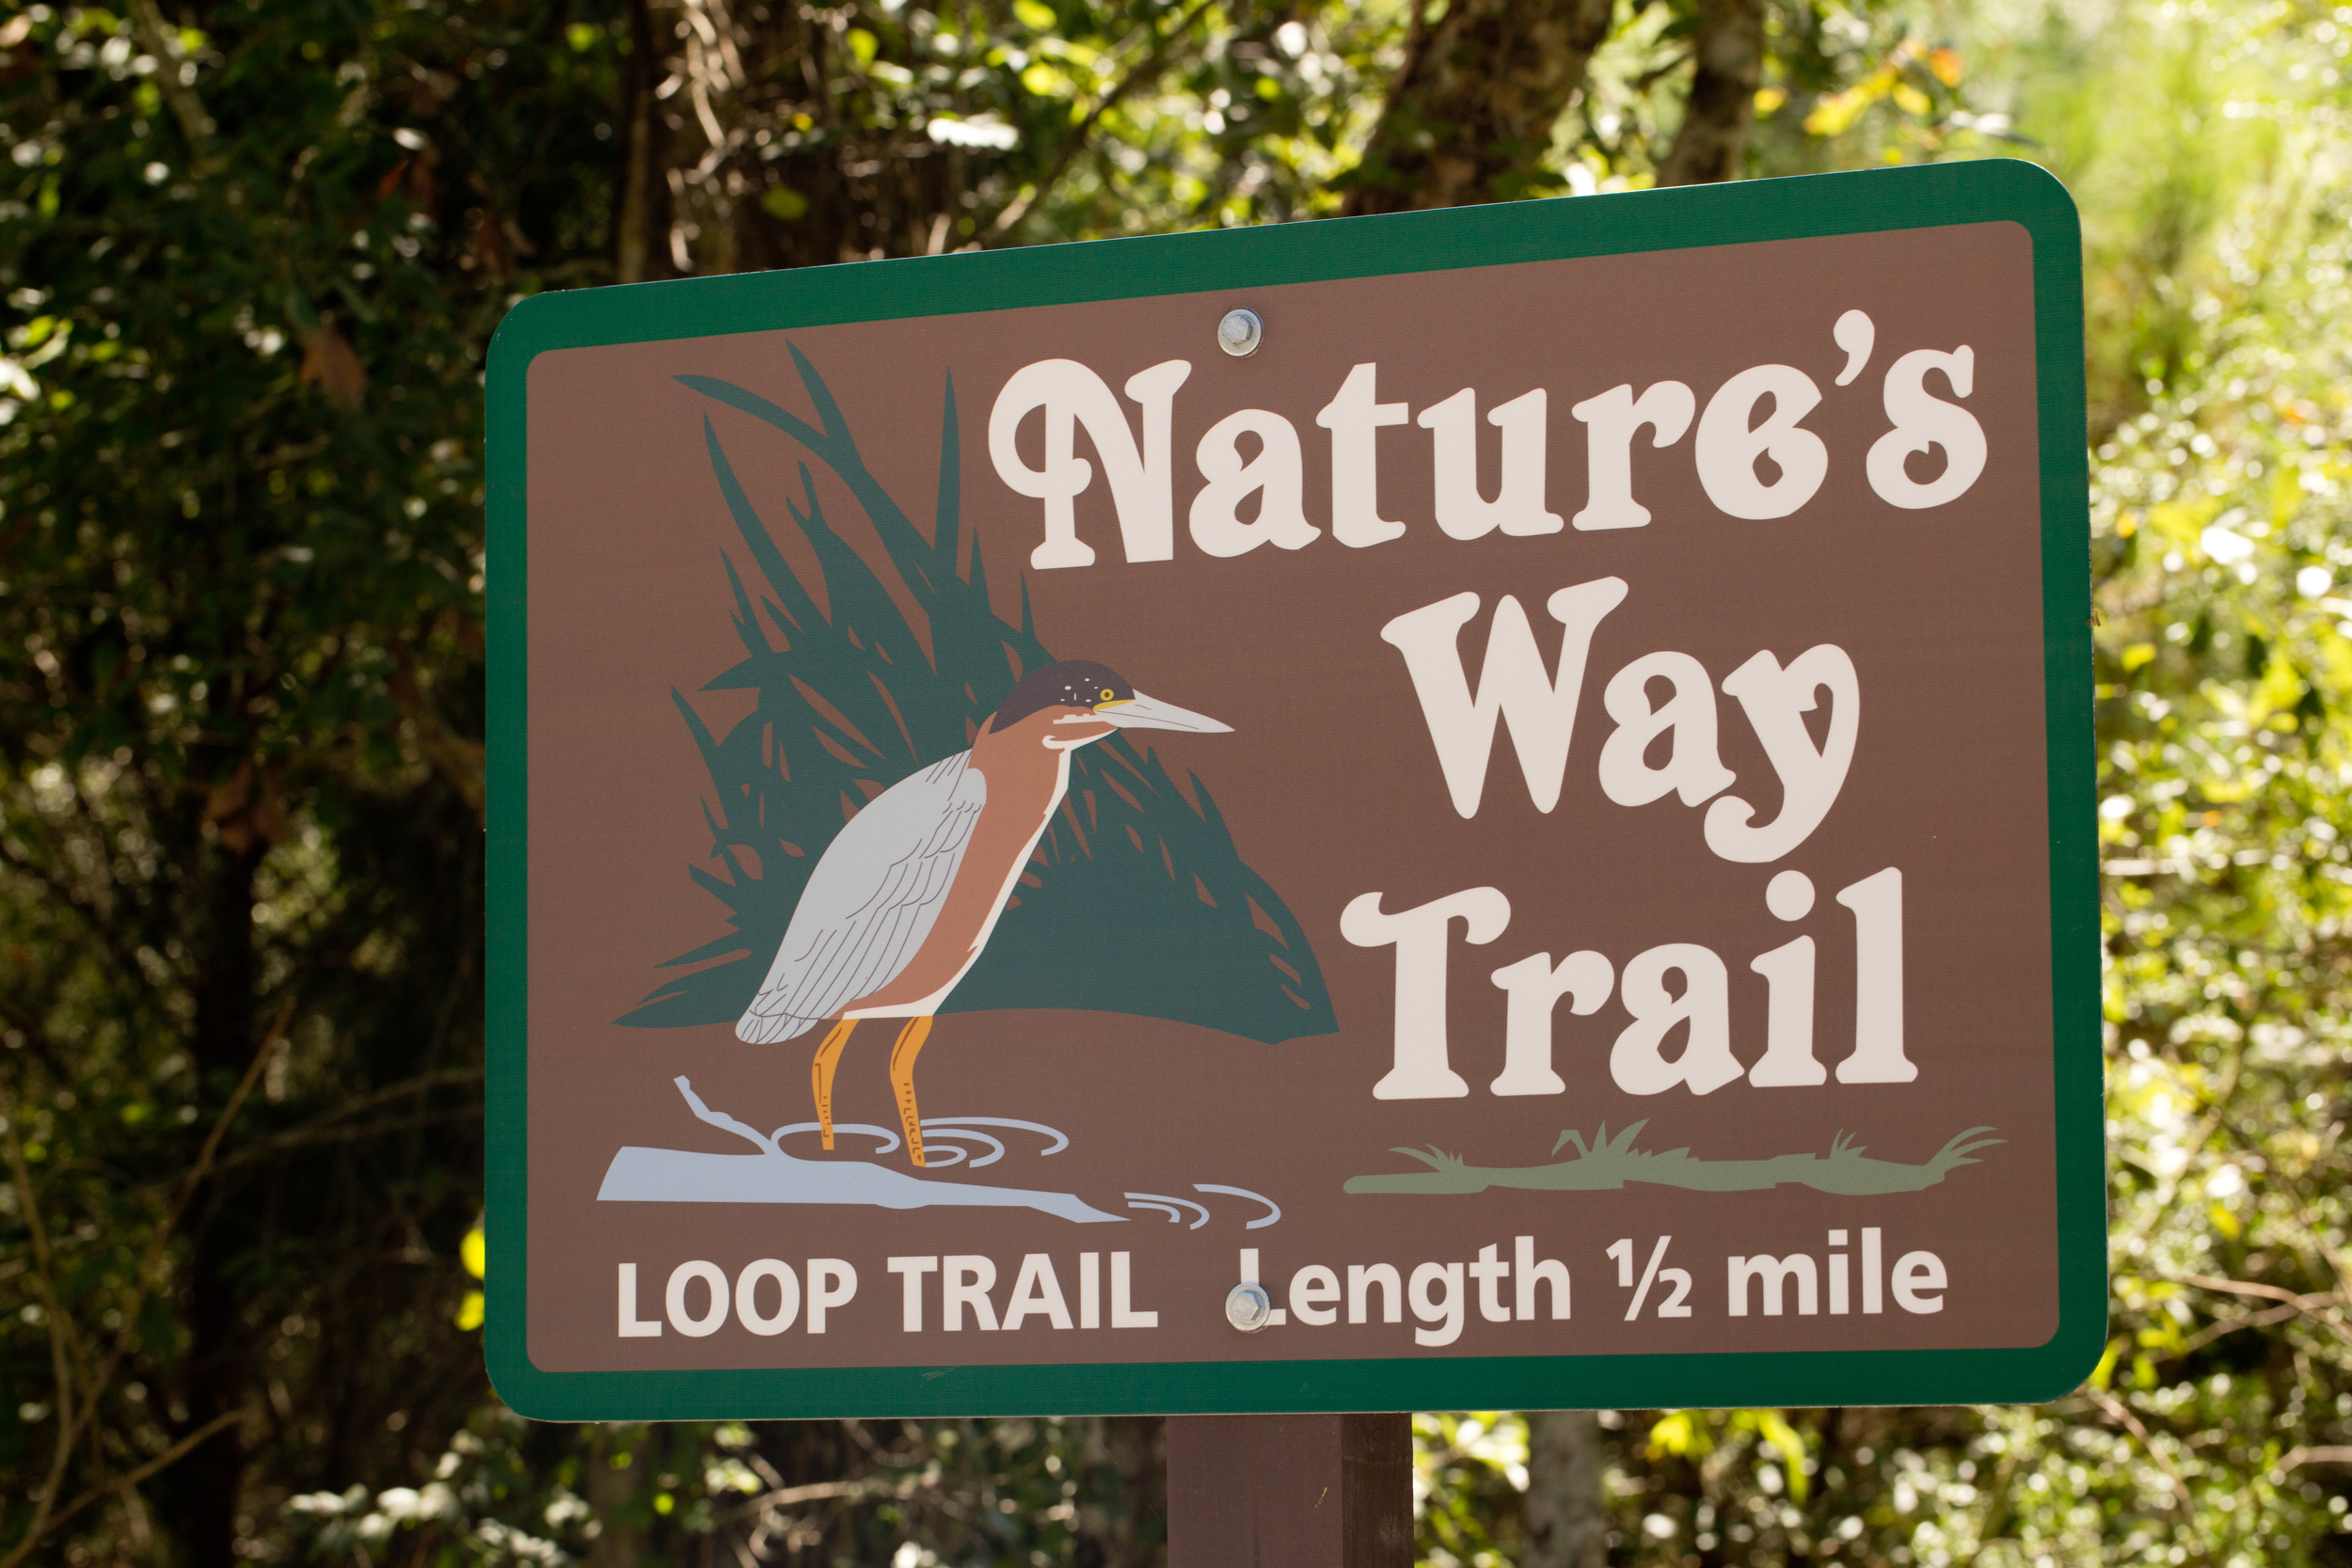 Nature's Way Trail sign (Ocean Springs, Mississippi)